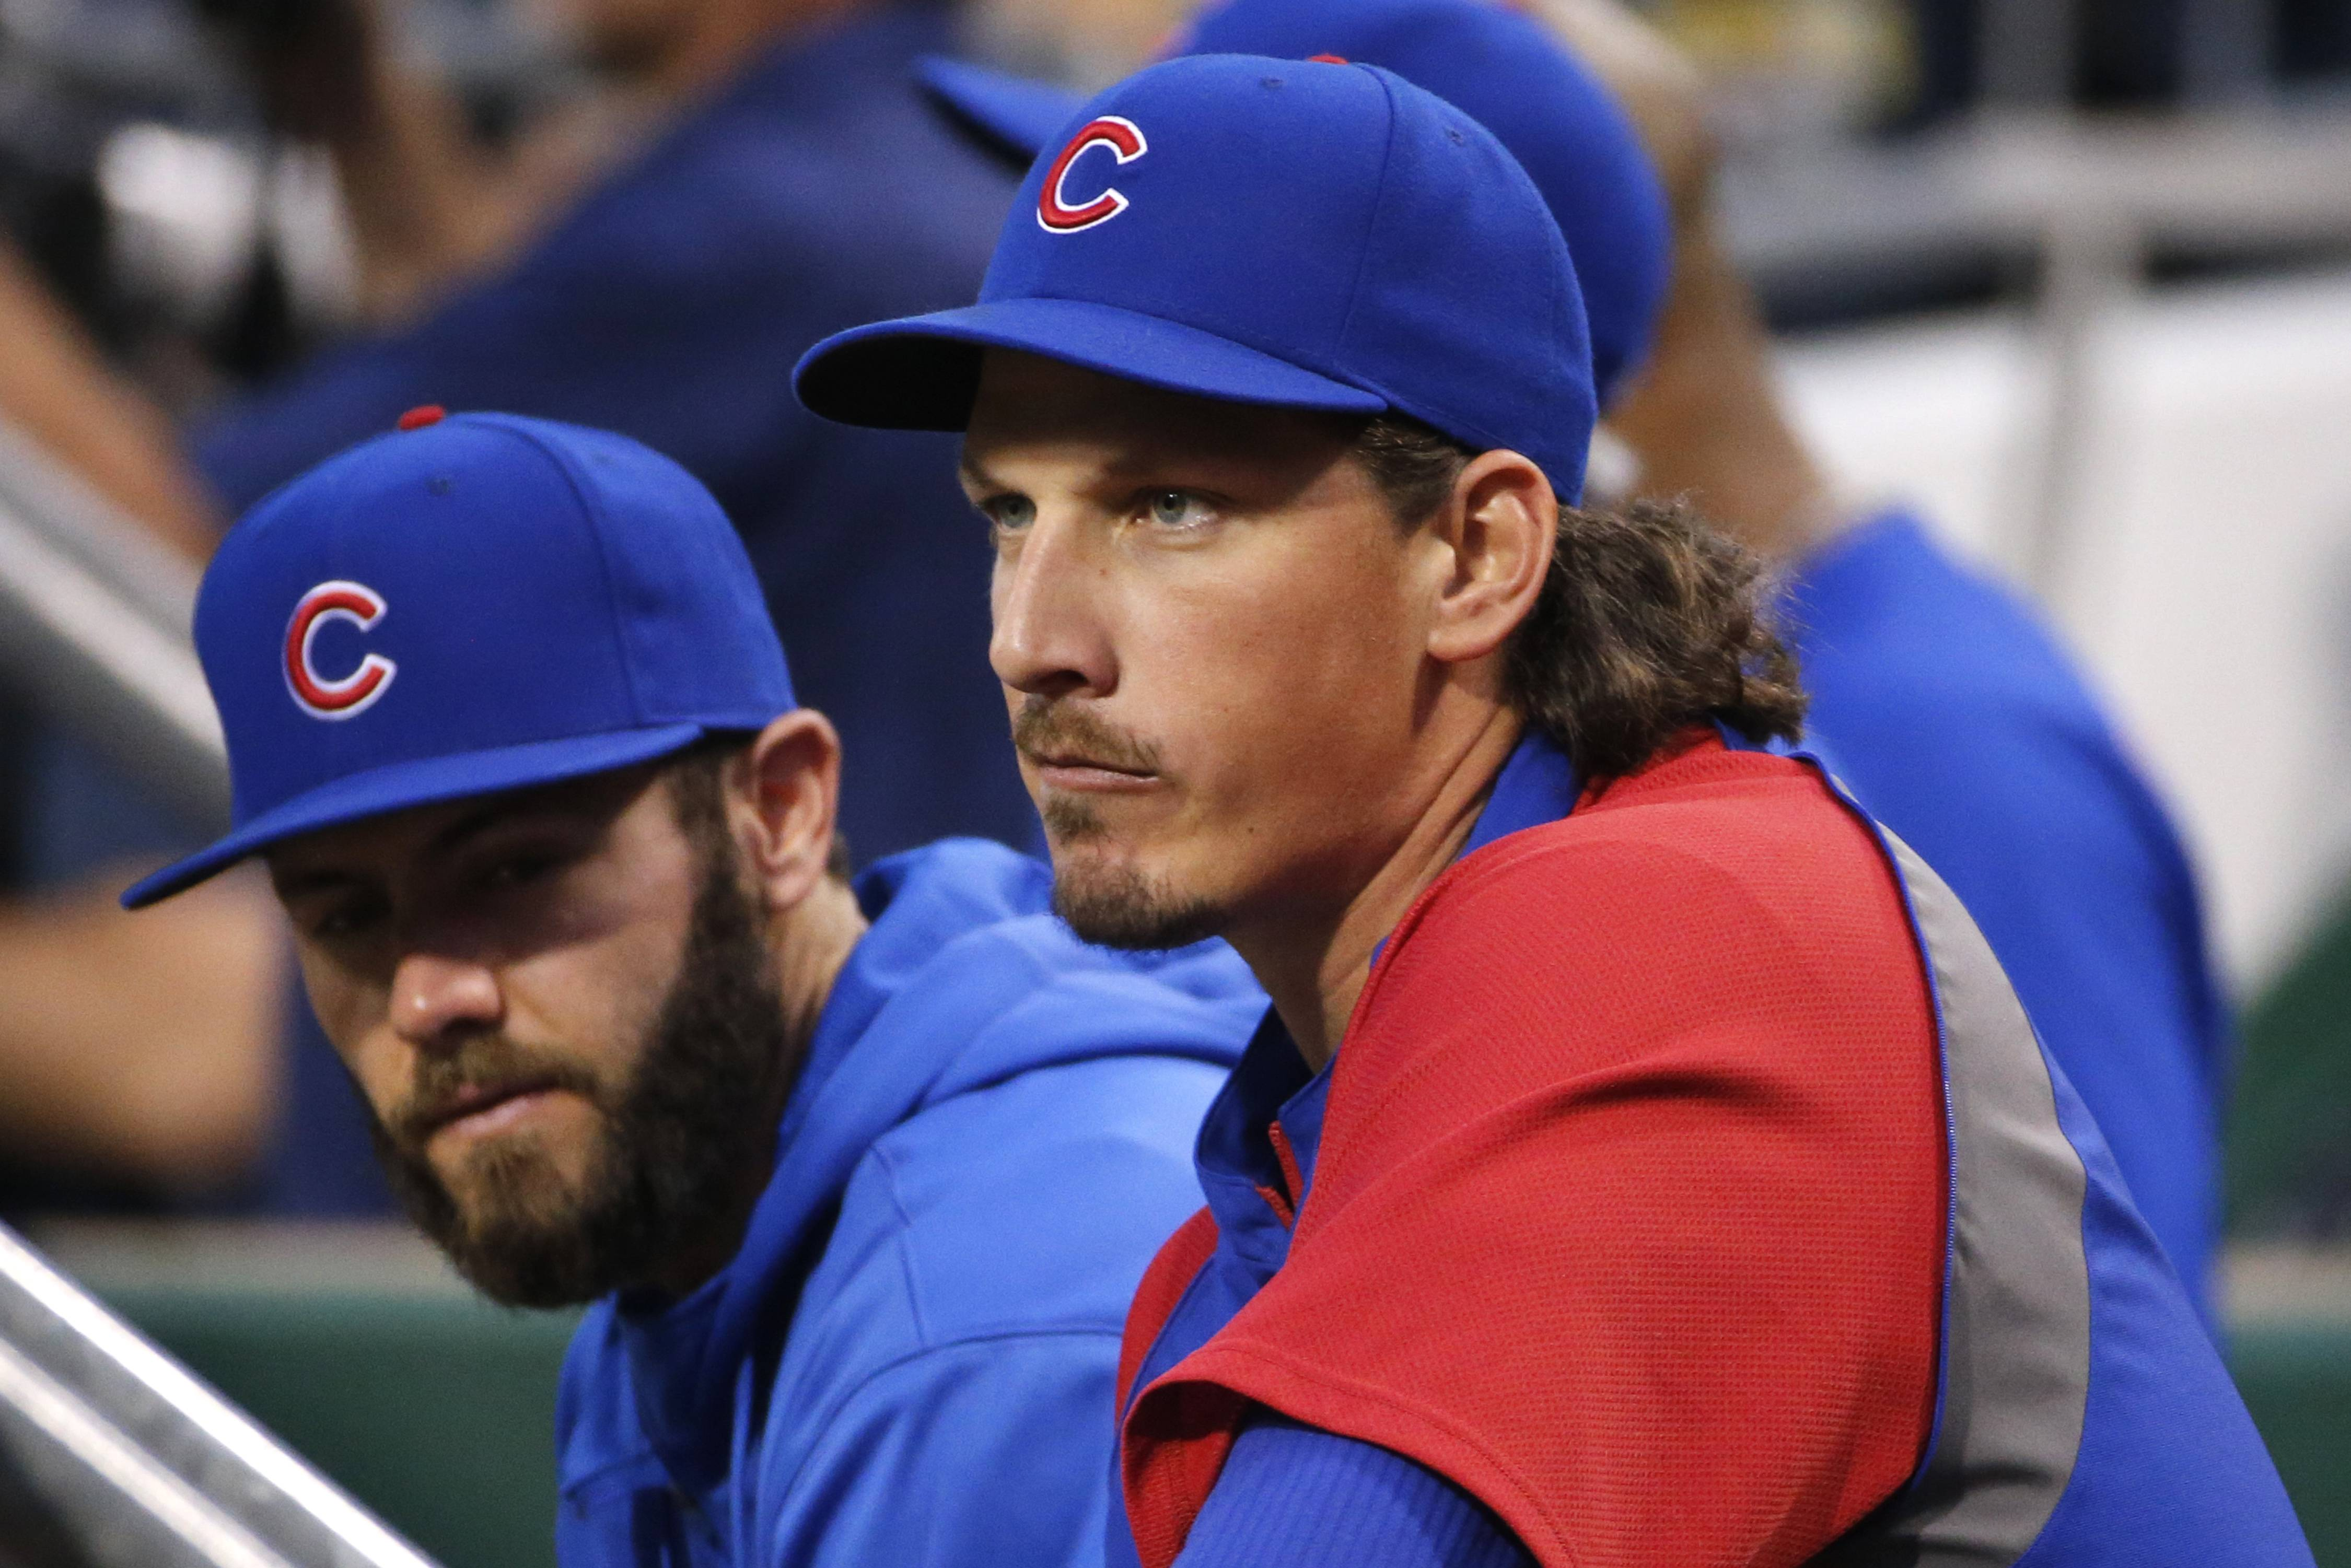 Maybe the Cubs shouldn't move so fast to either trade starting pitcher Jeff Samardzija, at right, or sign him to a long-term contract.